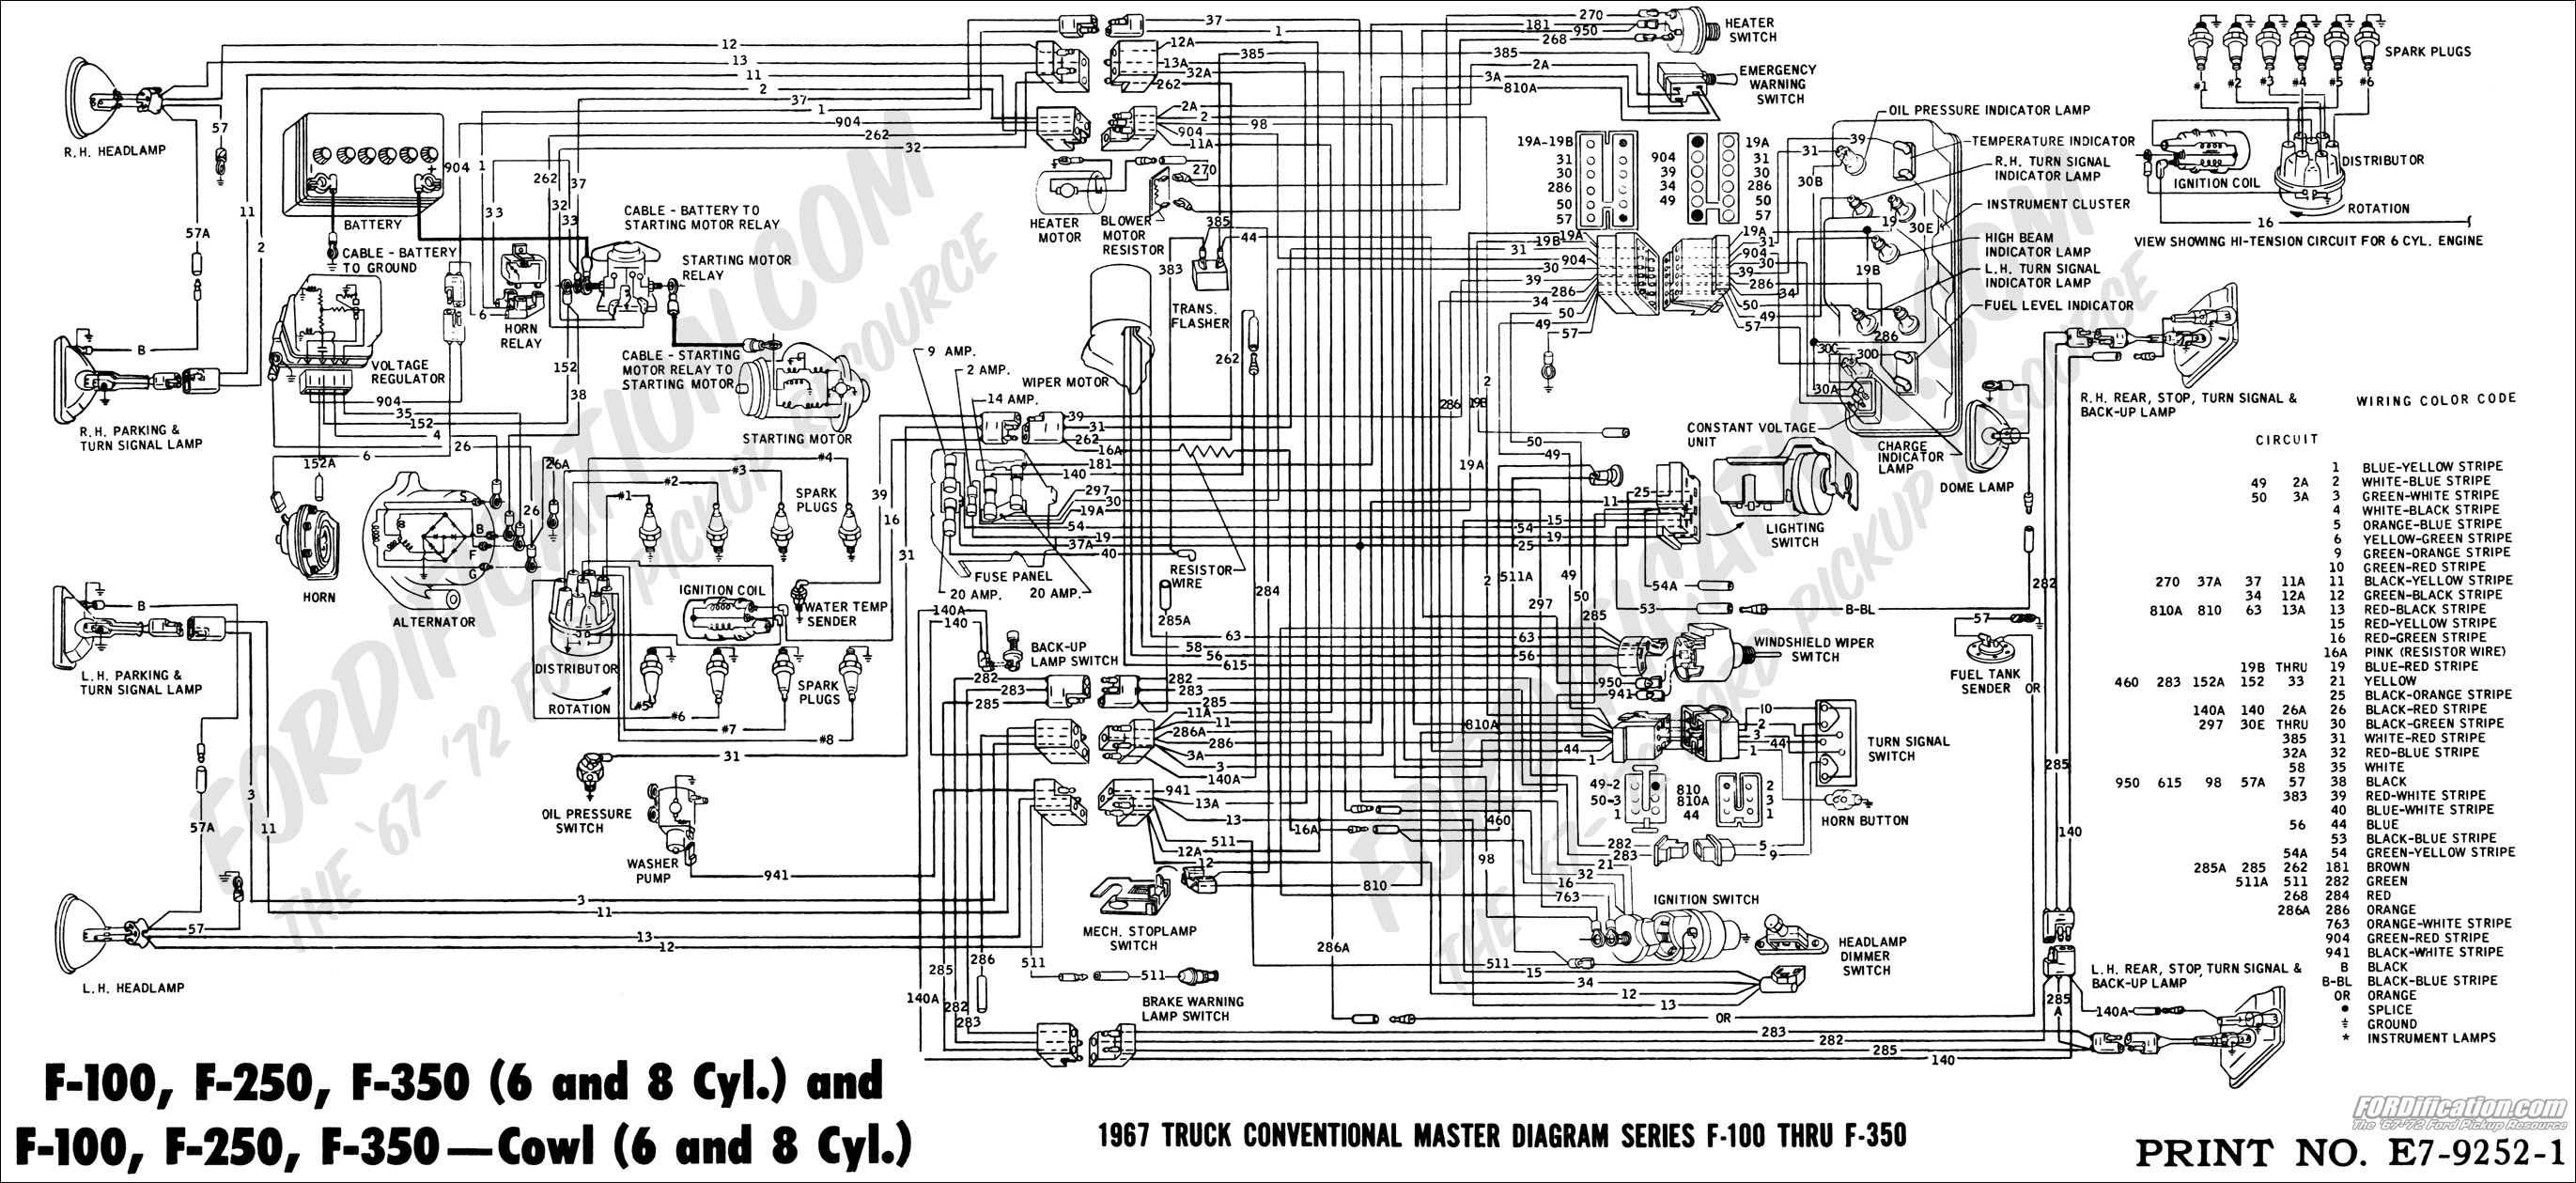 1976 ford f 150 wiring diagram online wiring diagram data88 f150 wiring diagram wiring library